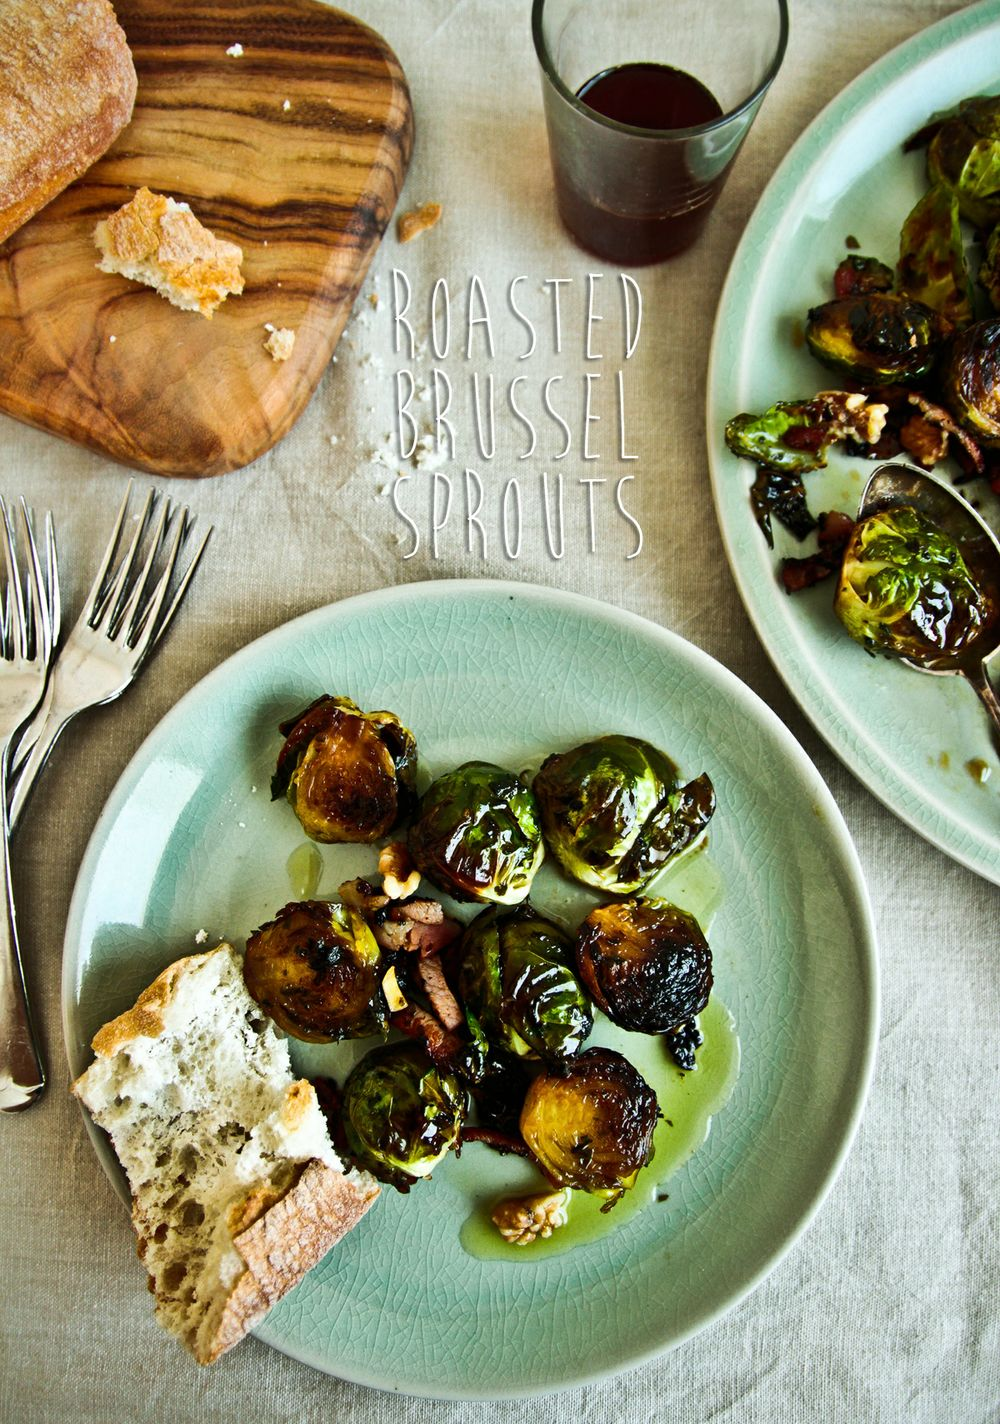 m-roasted-brussel-sprouts-1